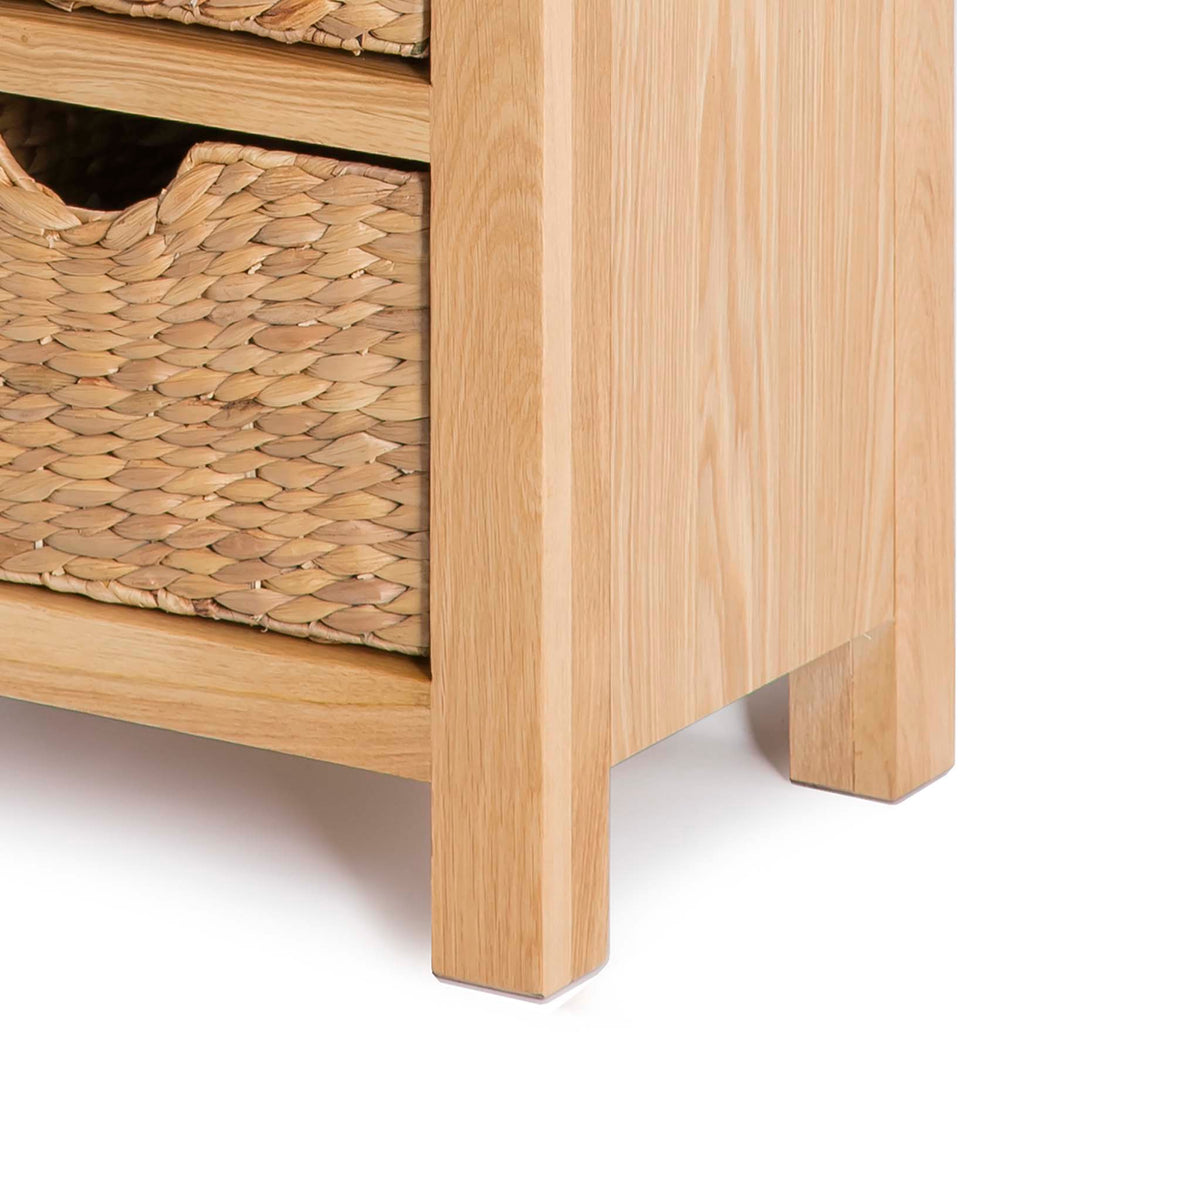 London Oak Tallboy with Baskets - Close up of base of tallboy